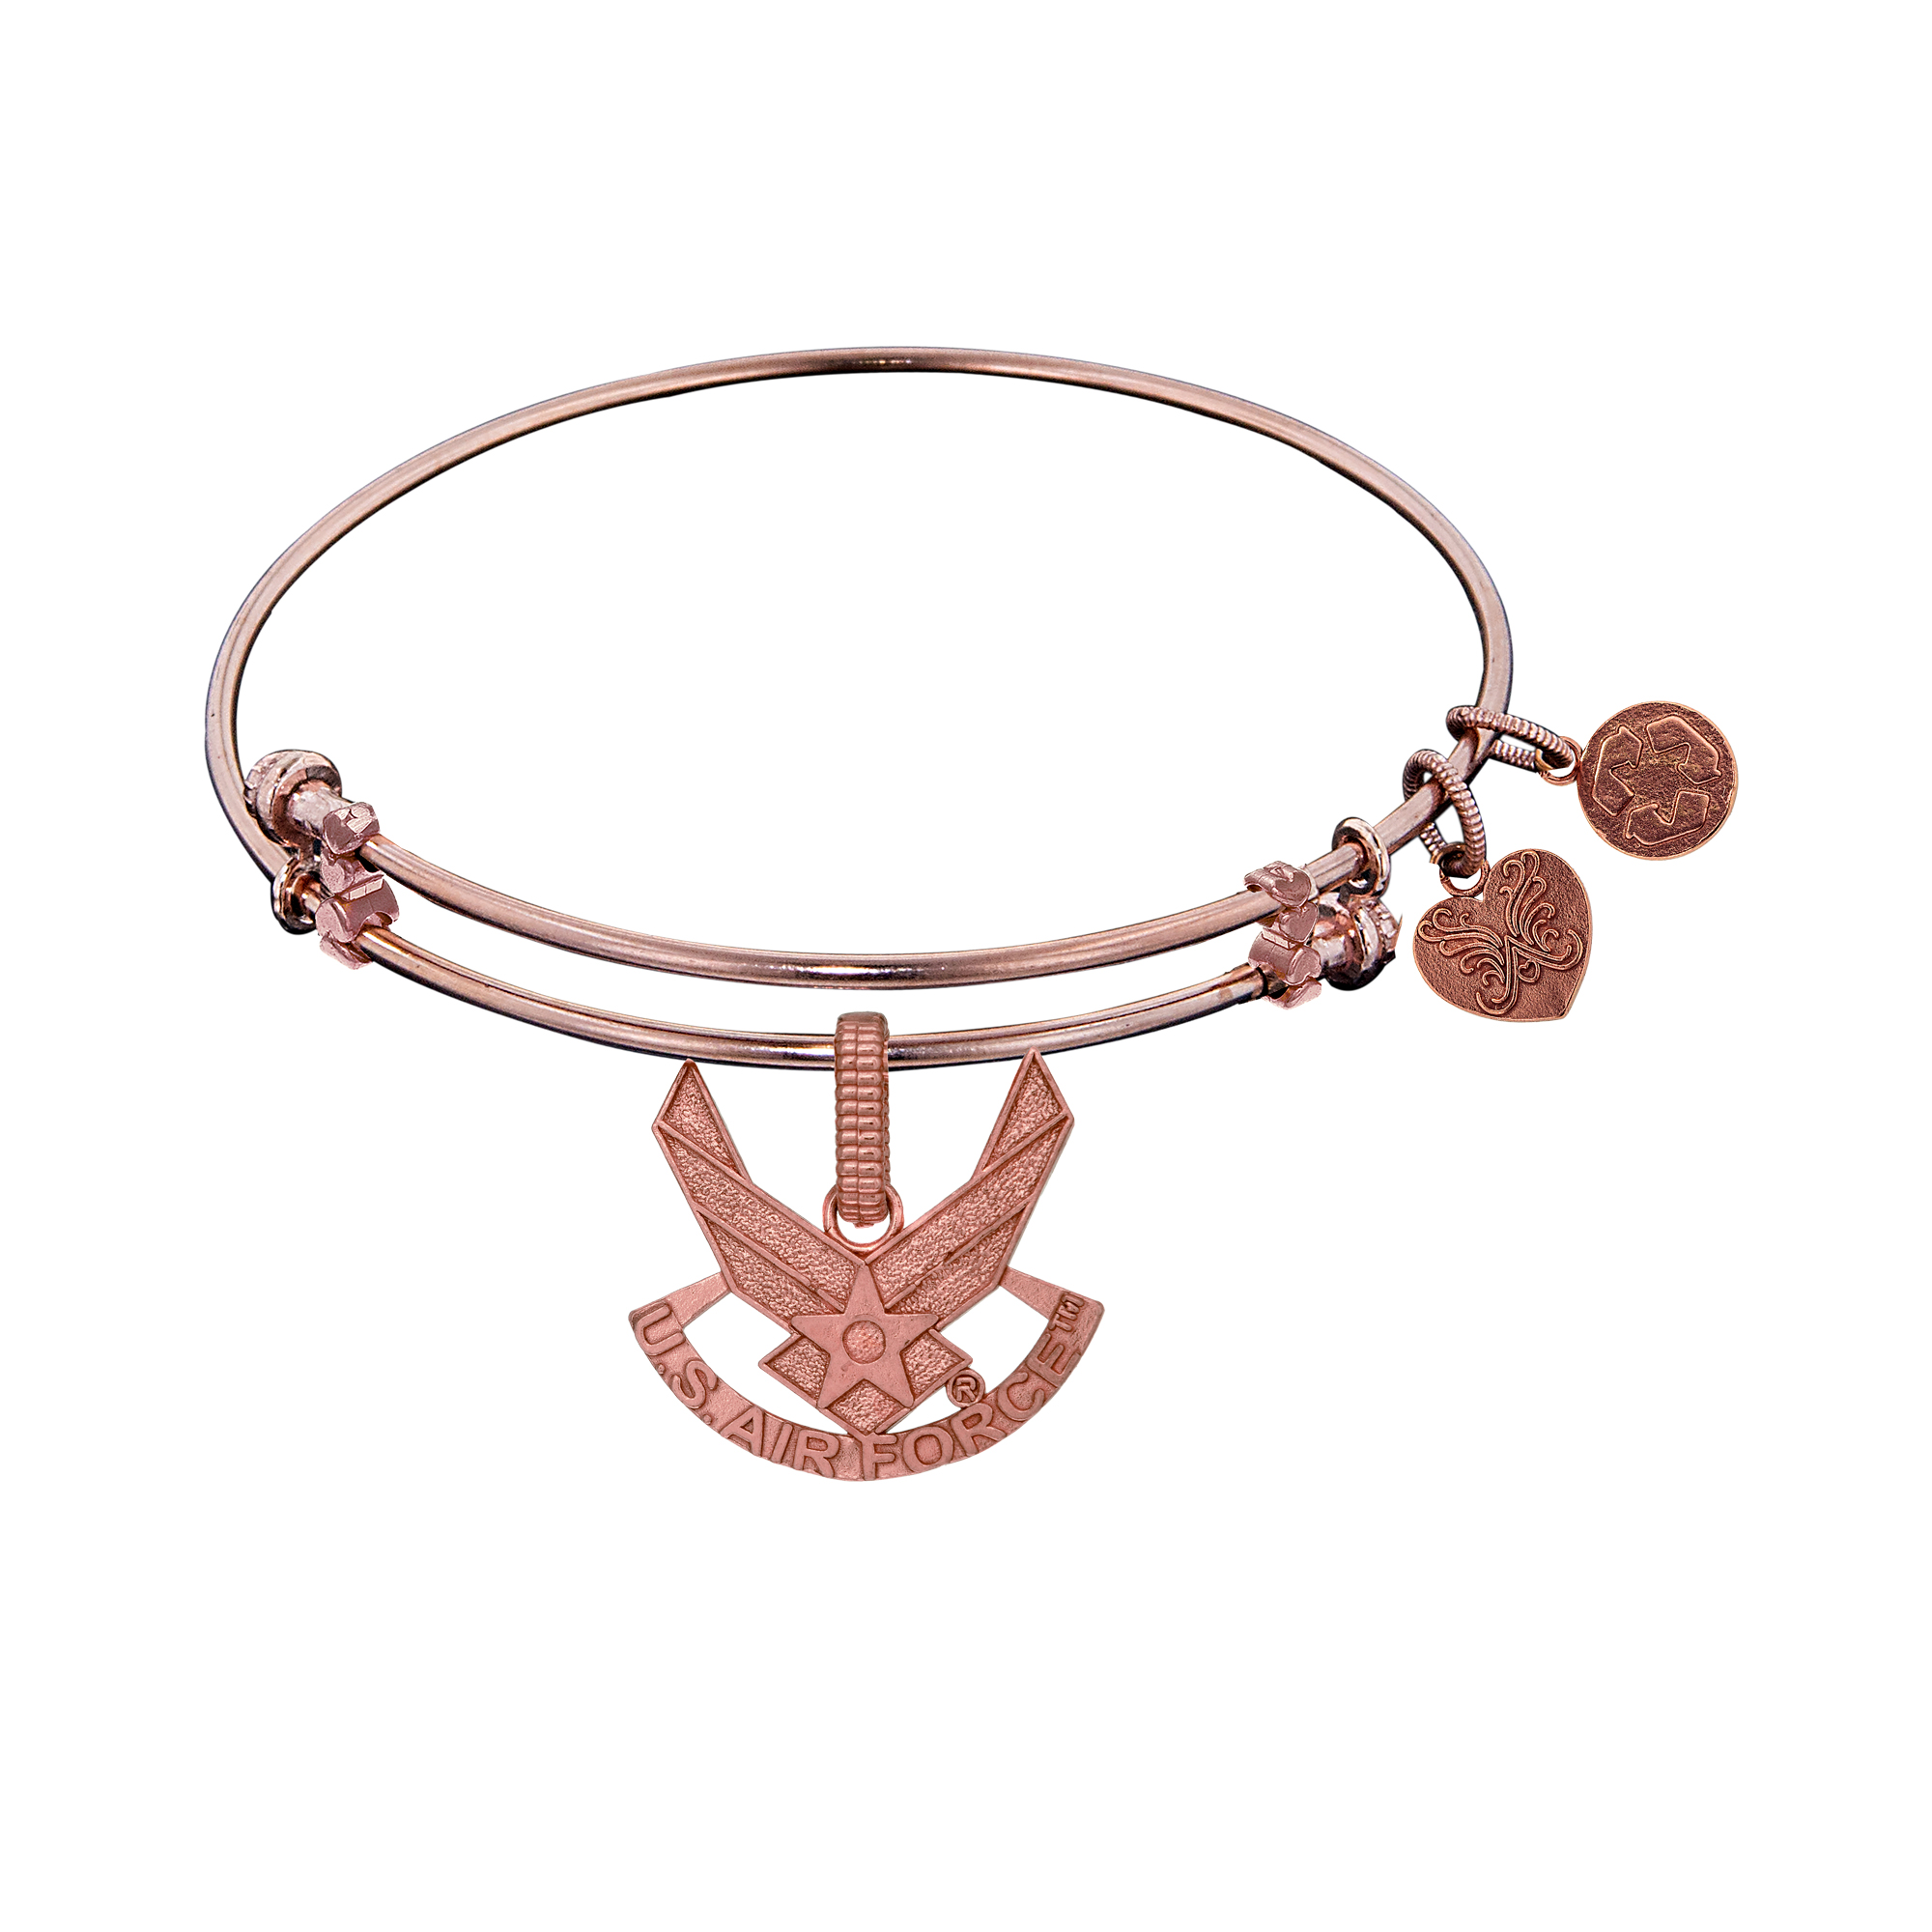 U.S. Air Force Charm Expandable Bangle Bracelet, 7.25″